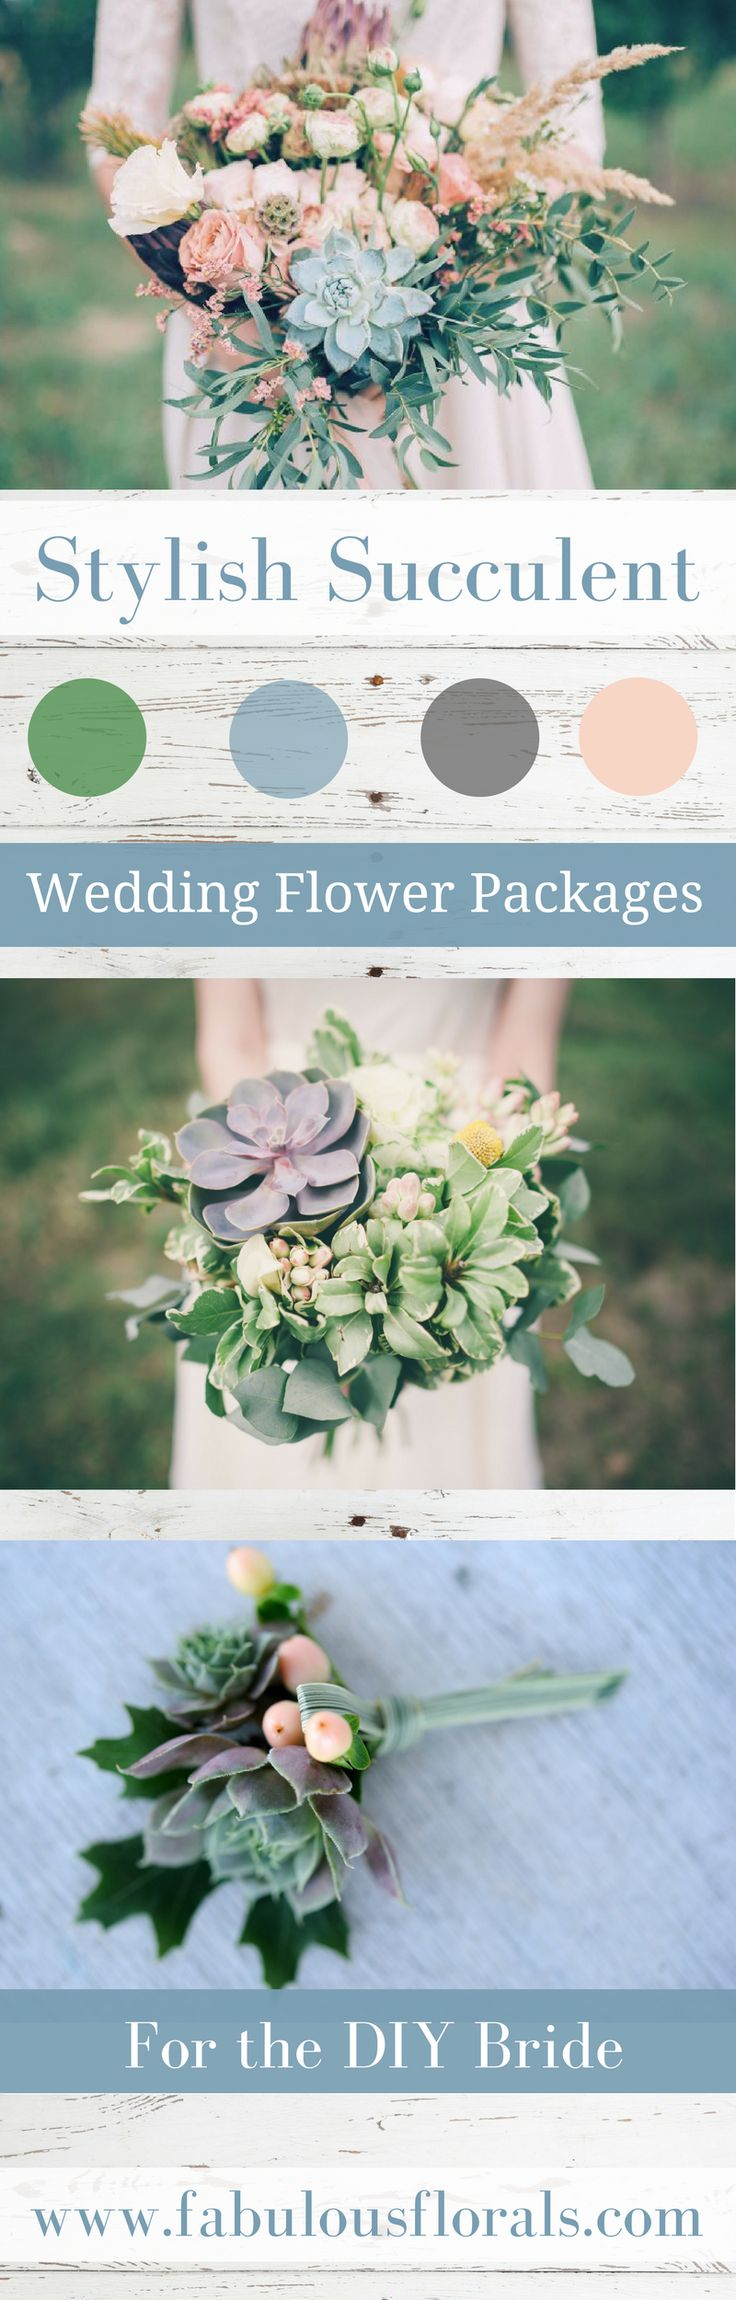 Best 25 Wedding flower packages ideas on Pinterest Stephanotis